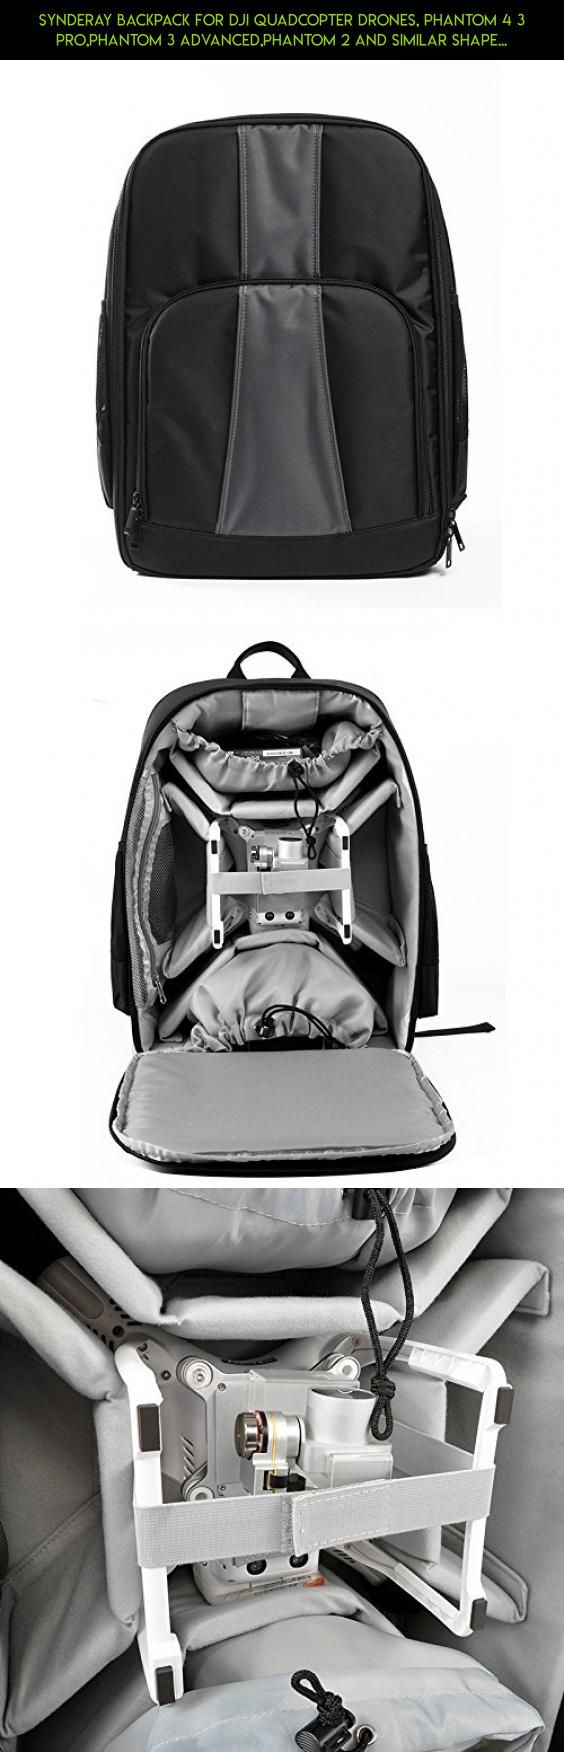 SyndeRay Backpack for DJI Quadcopter Drones, Phantom 4 3 Pro,Phantom 3 Advanced,Phantom 2 and Similar Shape Drones,Extra Light,Water Resistant,and Fits Extra Accessories Gopro Cameras and Laptop #fpv #technology #racing #drone #plans #xiro #drone #tech #products #accessories #kit #parts #camera #shopping #gadgets